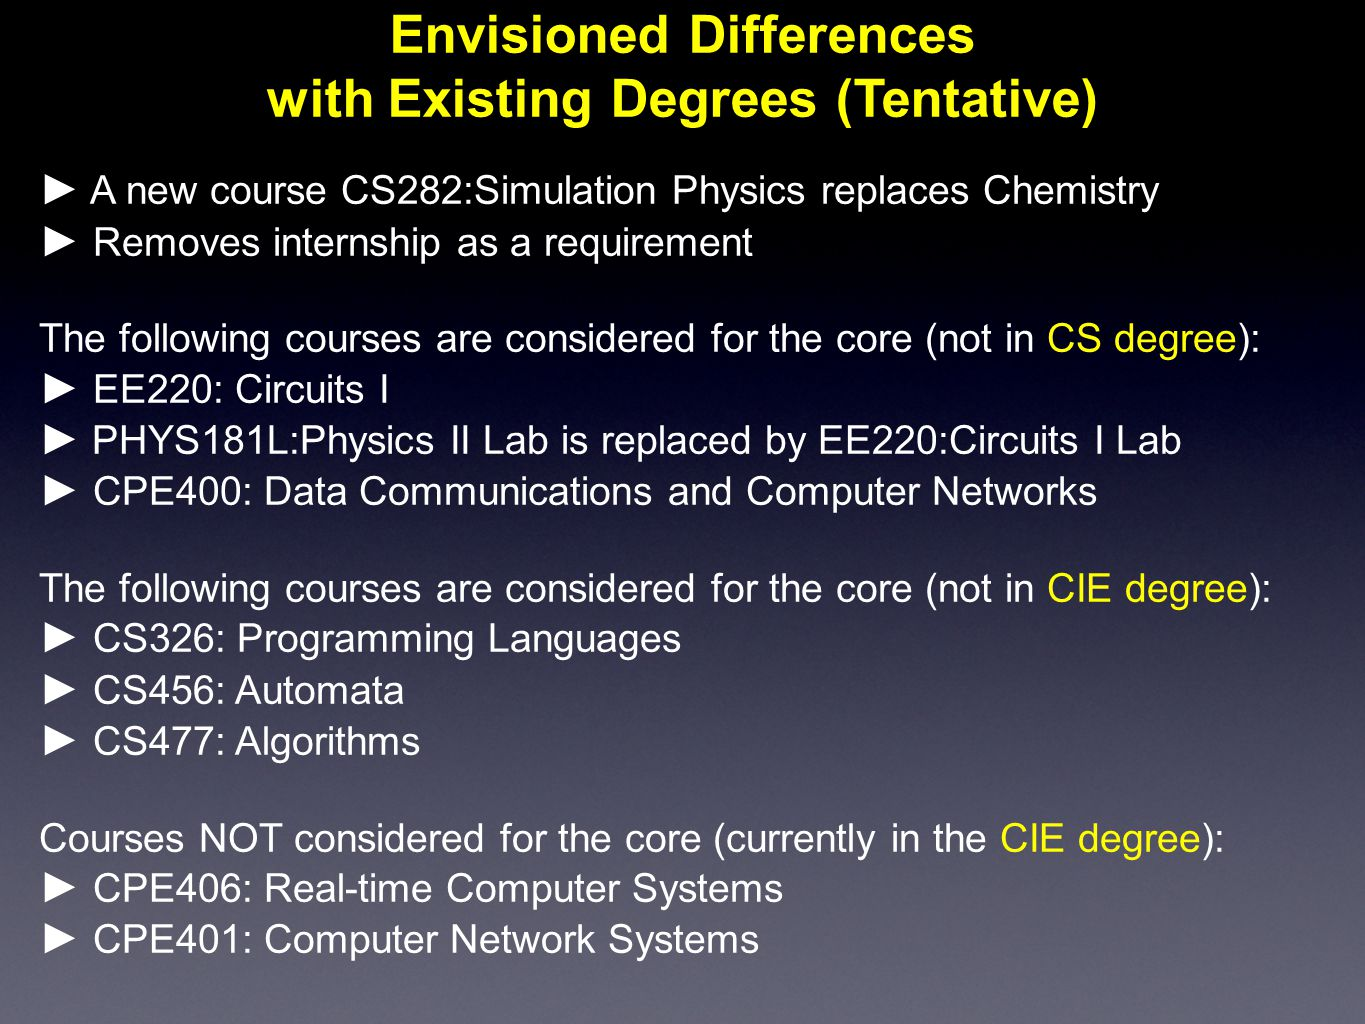 ► A new course CS282:Simulation Physics replaces Chemistry ► Removes internship as a requirement The following courses are considered for the core (not in CS degree): ► EE220: Circuits I ► PHYS181L:Physics II Lab is replaced by EE220:Circuits I Lab ► CPE400: Data Communications and Computer Networks The following courses are considered for the core (not in CIE degree): ► CS326: Programming Languages ► CS456: Automata ► CS477: Algorithms Courses NOT considered for the core (currently in the CIE degree): ► CPE406: Real-time Computer Systems ► CPE401: Computer Network Systems Envisioned Differences with Existing Degrees (Tentative)